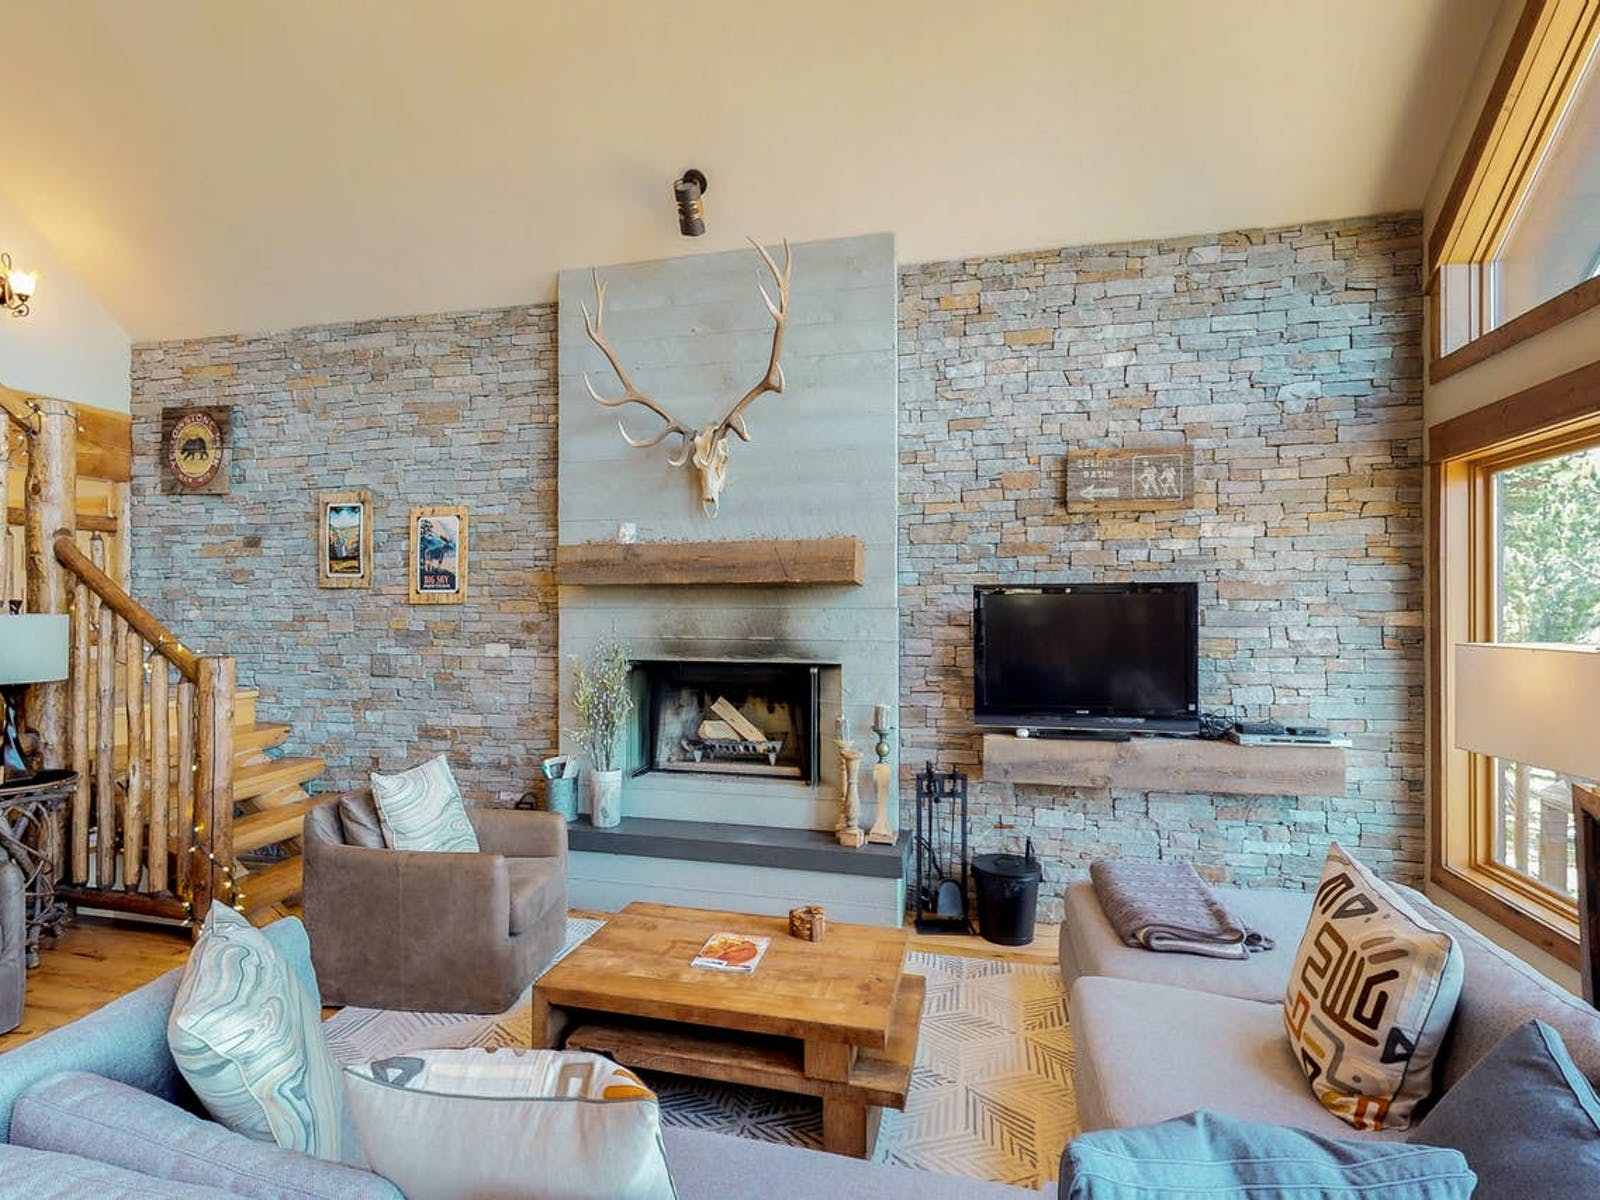 wood burning fireplace with a stag head mounted above in Big Sky, MT vacation home